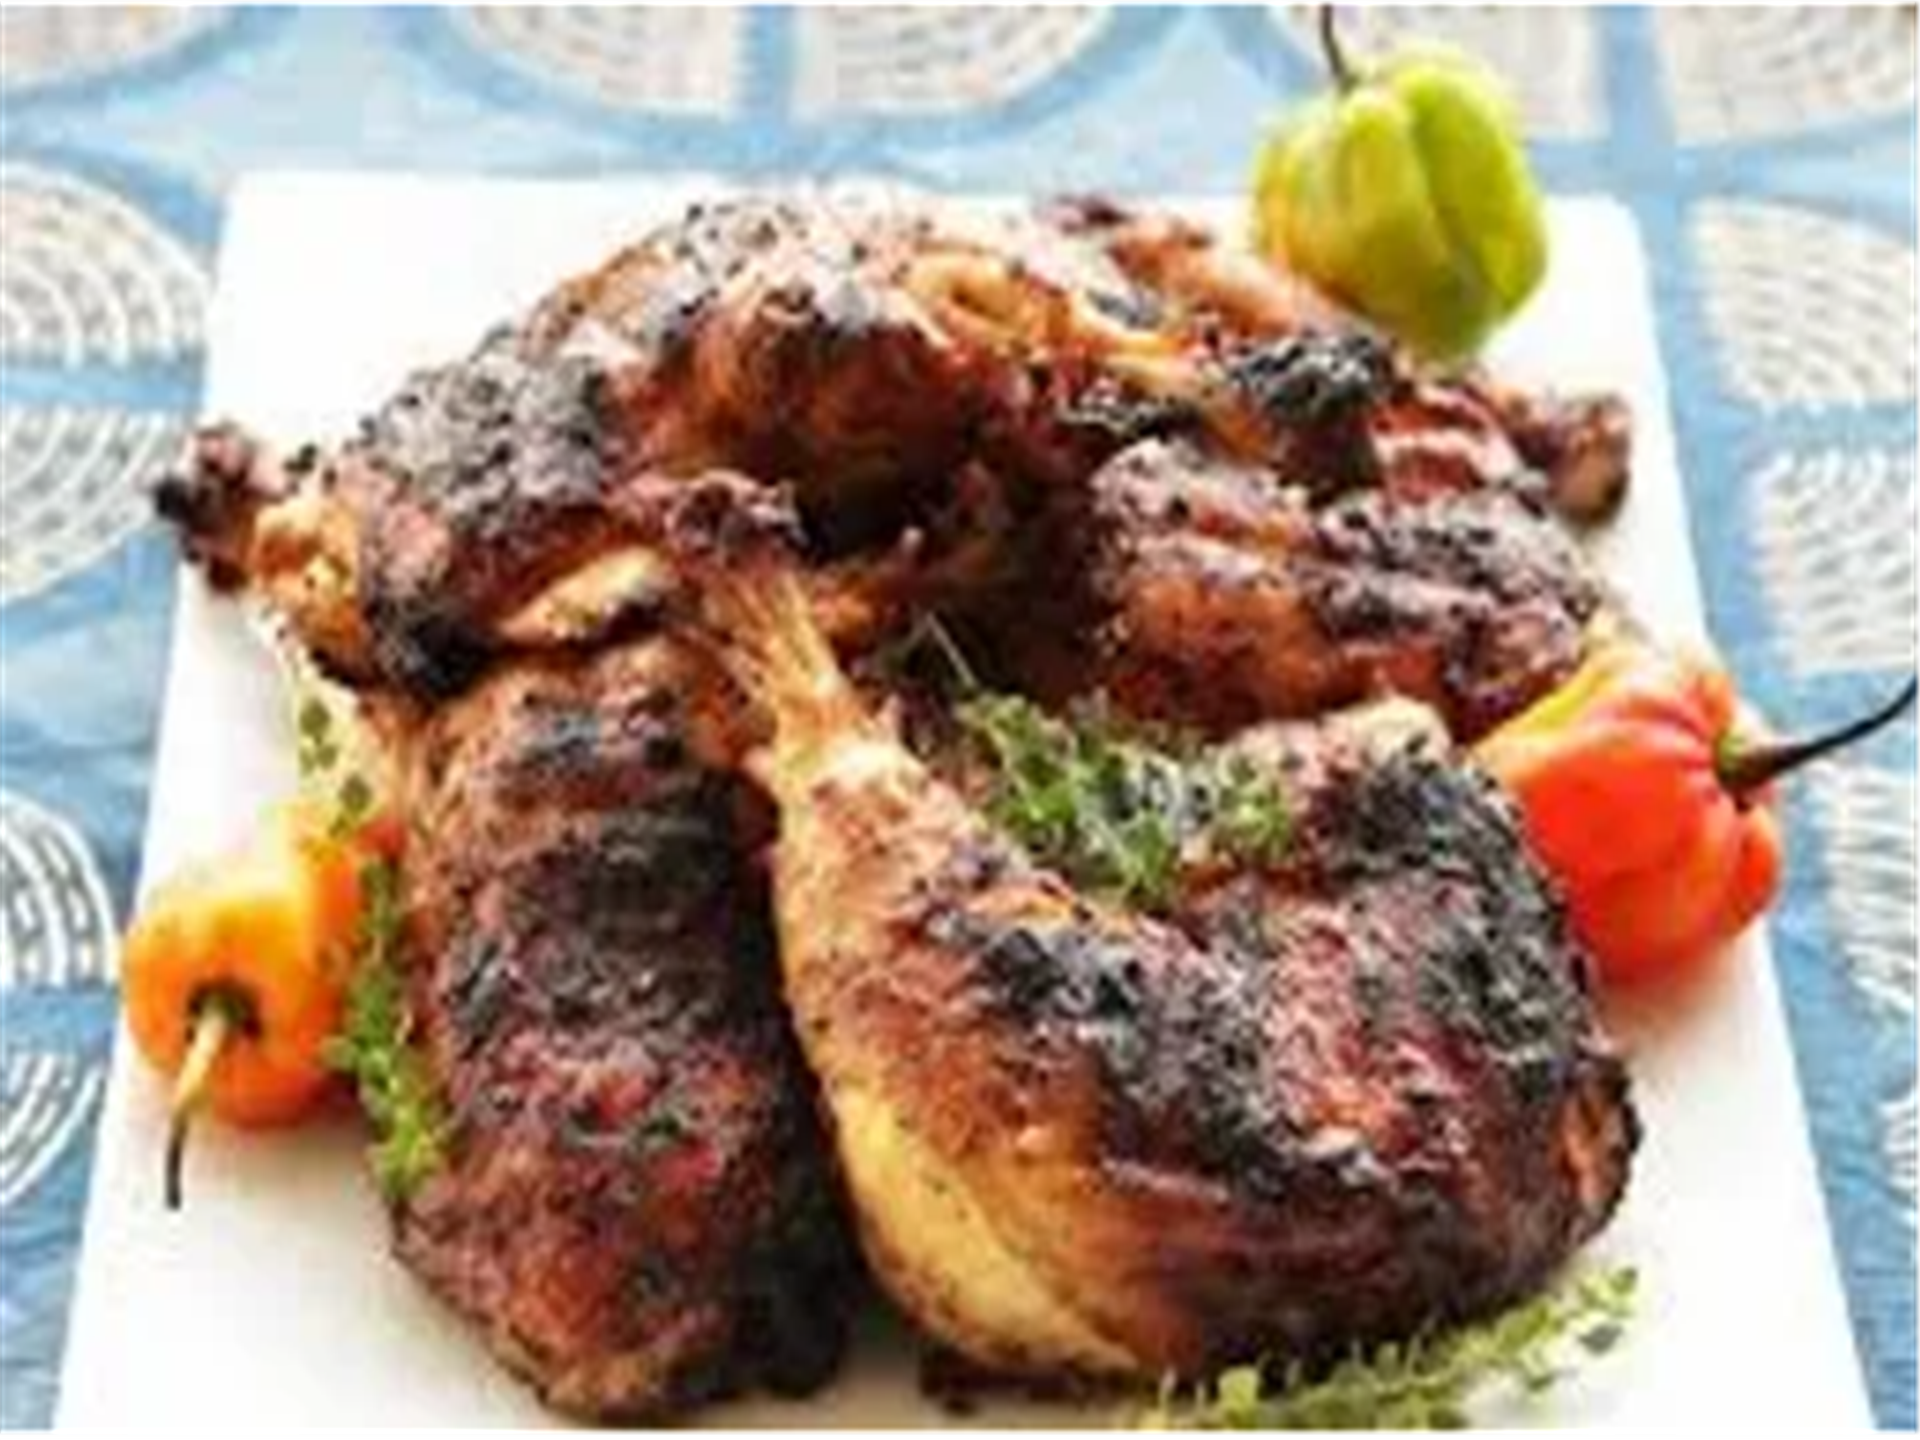 jerk chicken: slowly cooked to perfection served with rice and beans